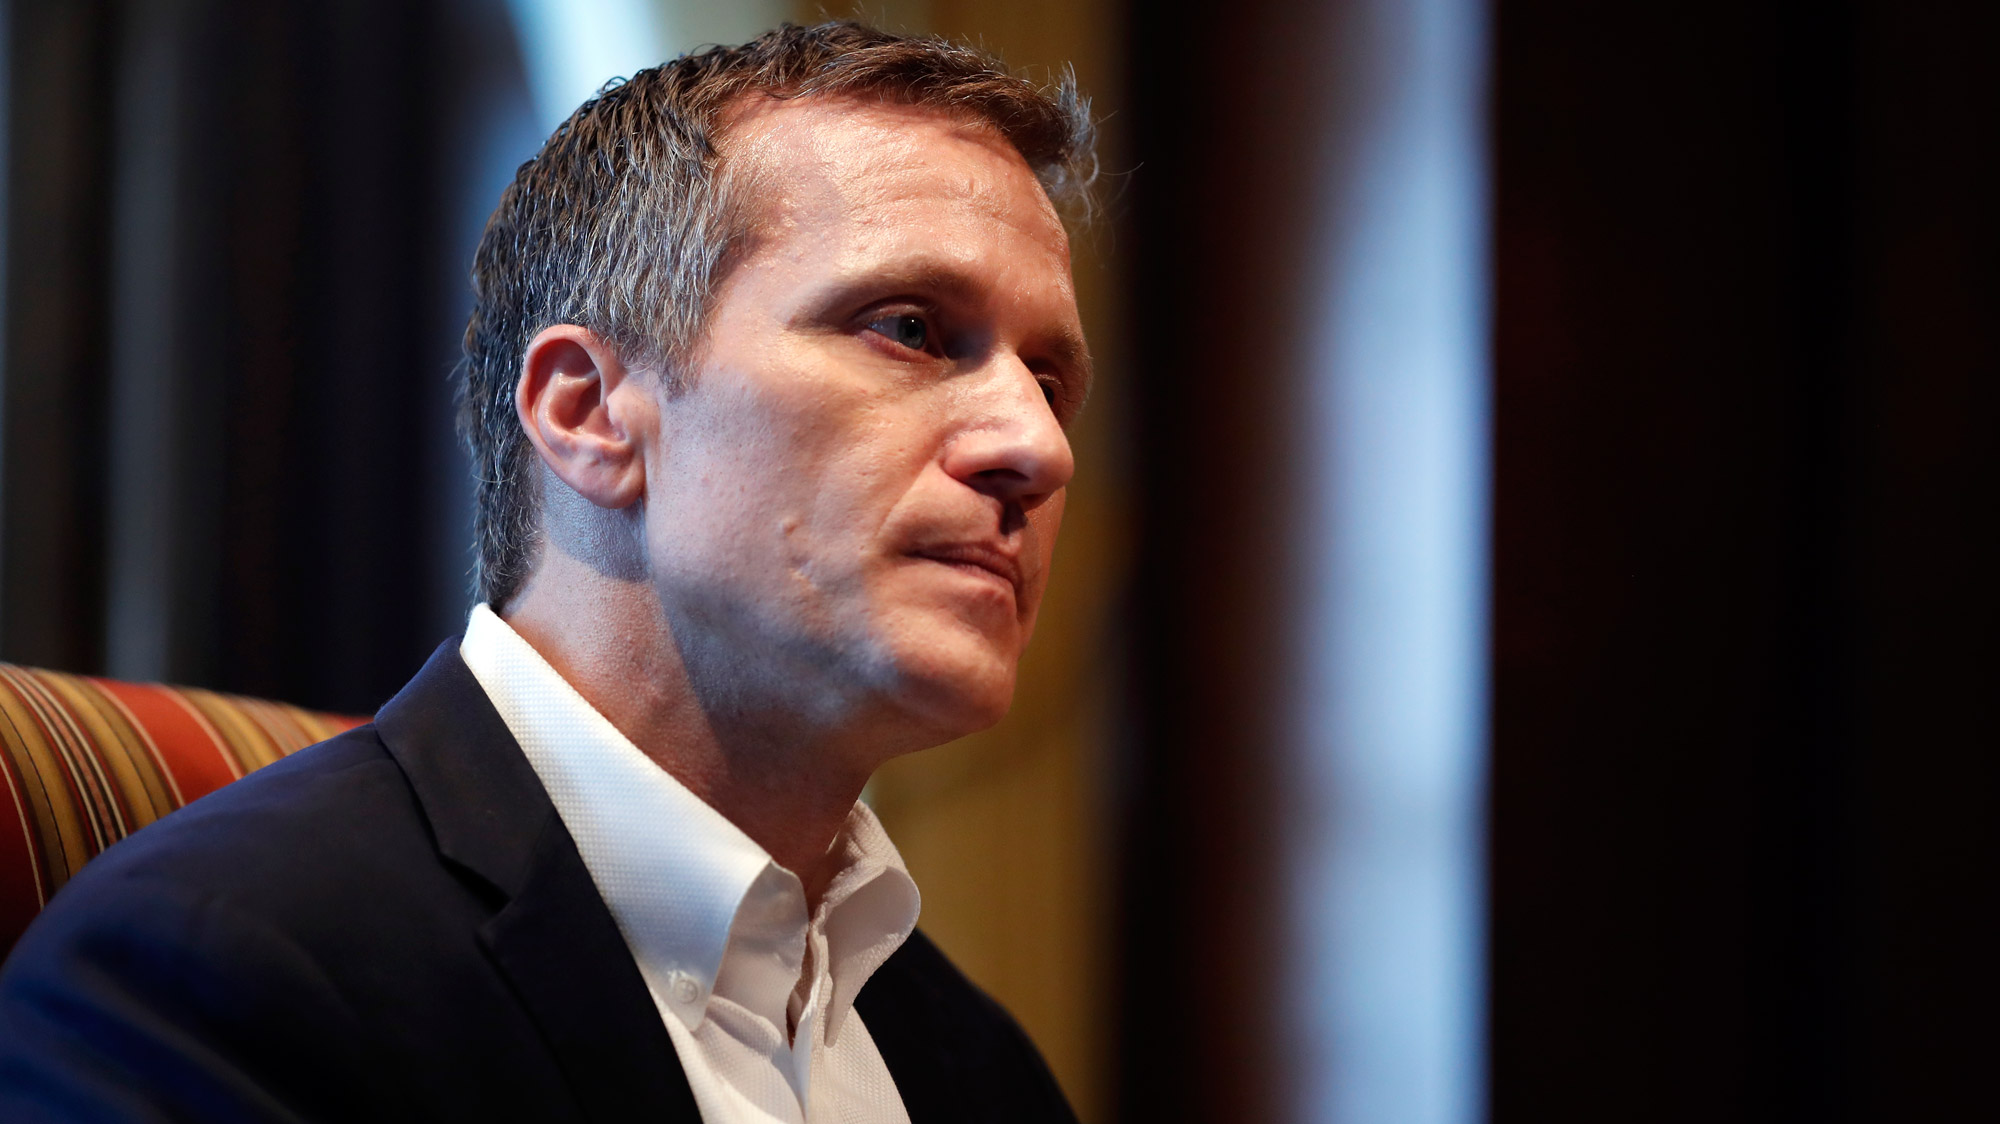 Missouri's Republican Governor Eric Greitens Was Just Indicted for Invasion of Privacy